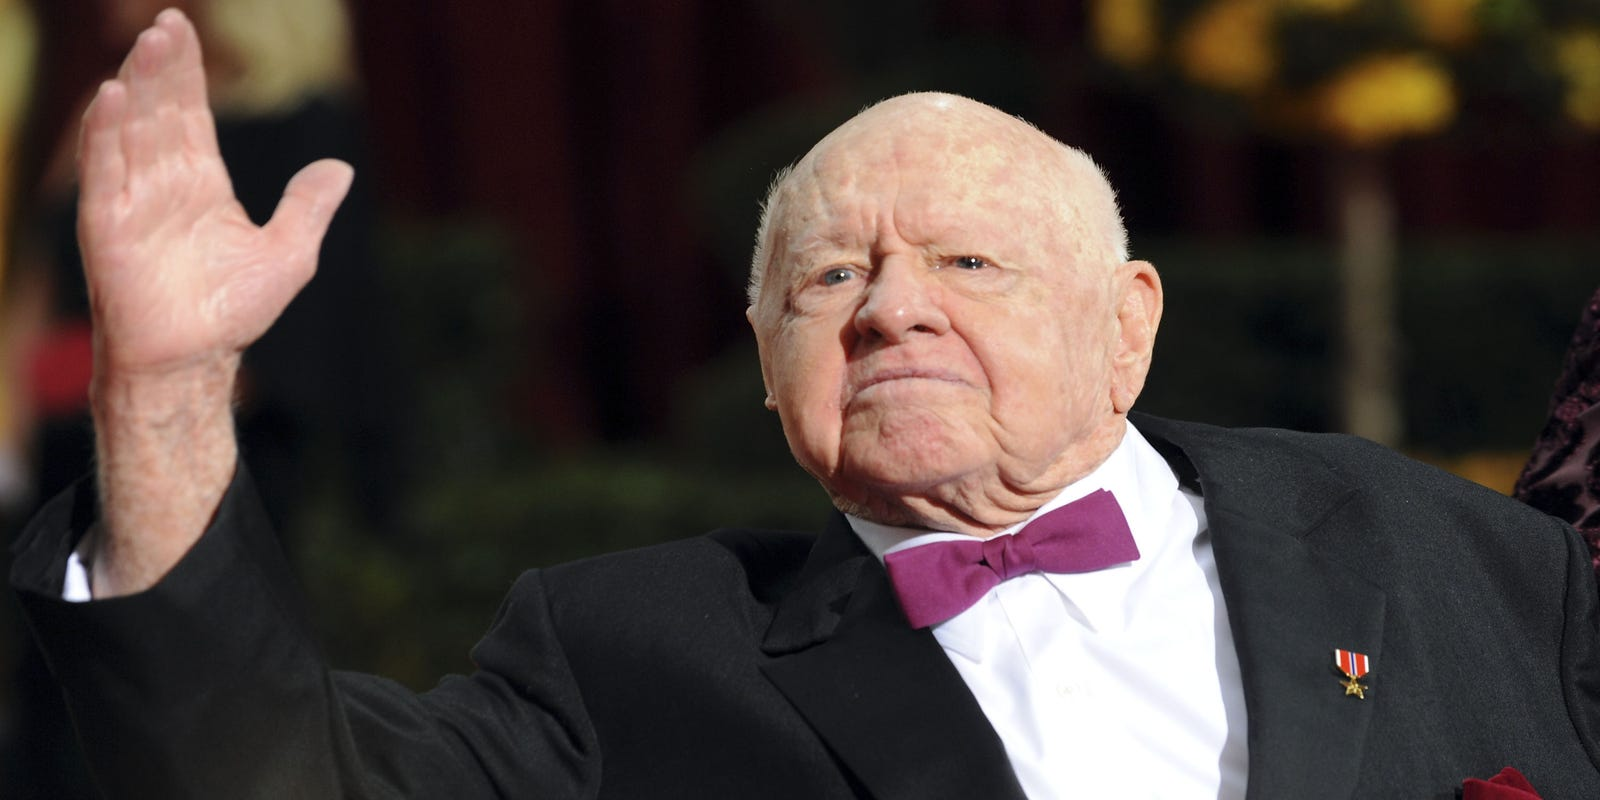 Hollywood Legend Mickey Rooney Dies Radio Wave Diagram Http Hollywoodbollywood Co In Hoadmin